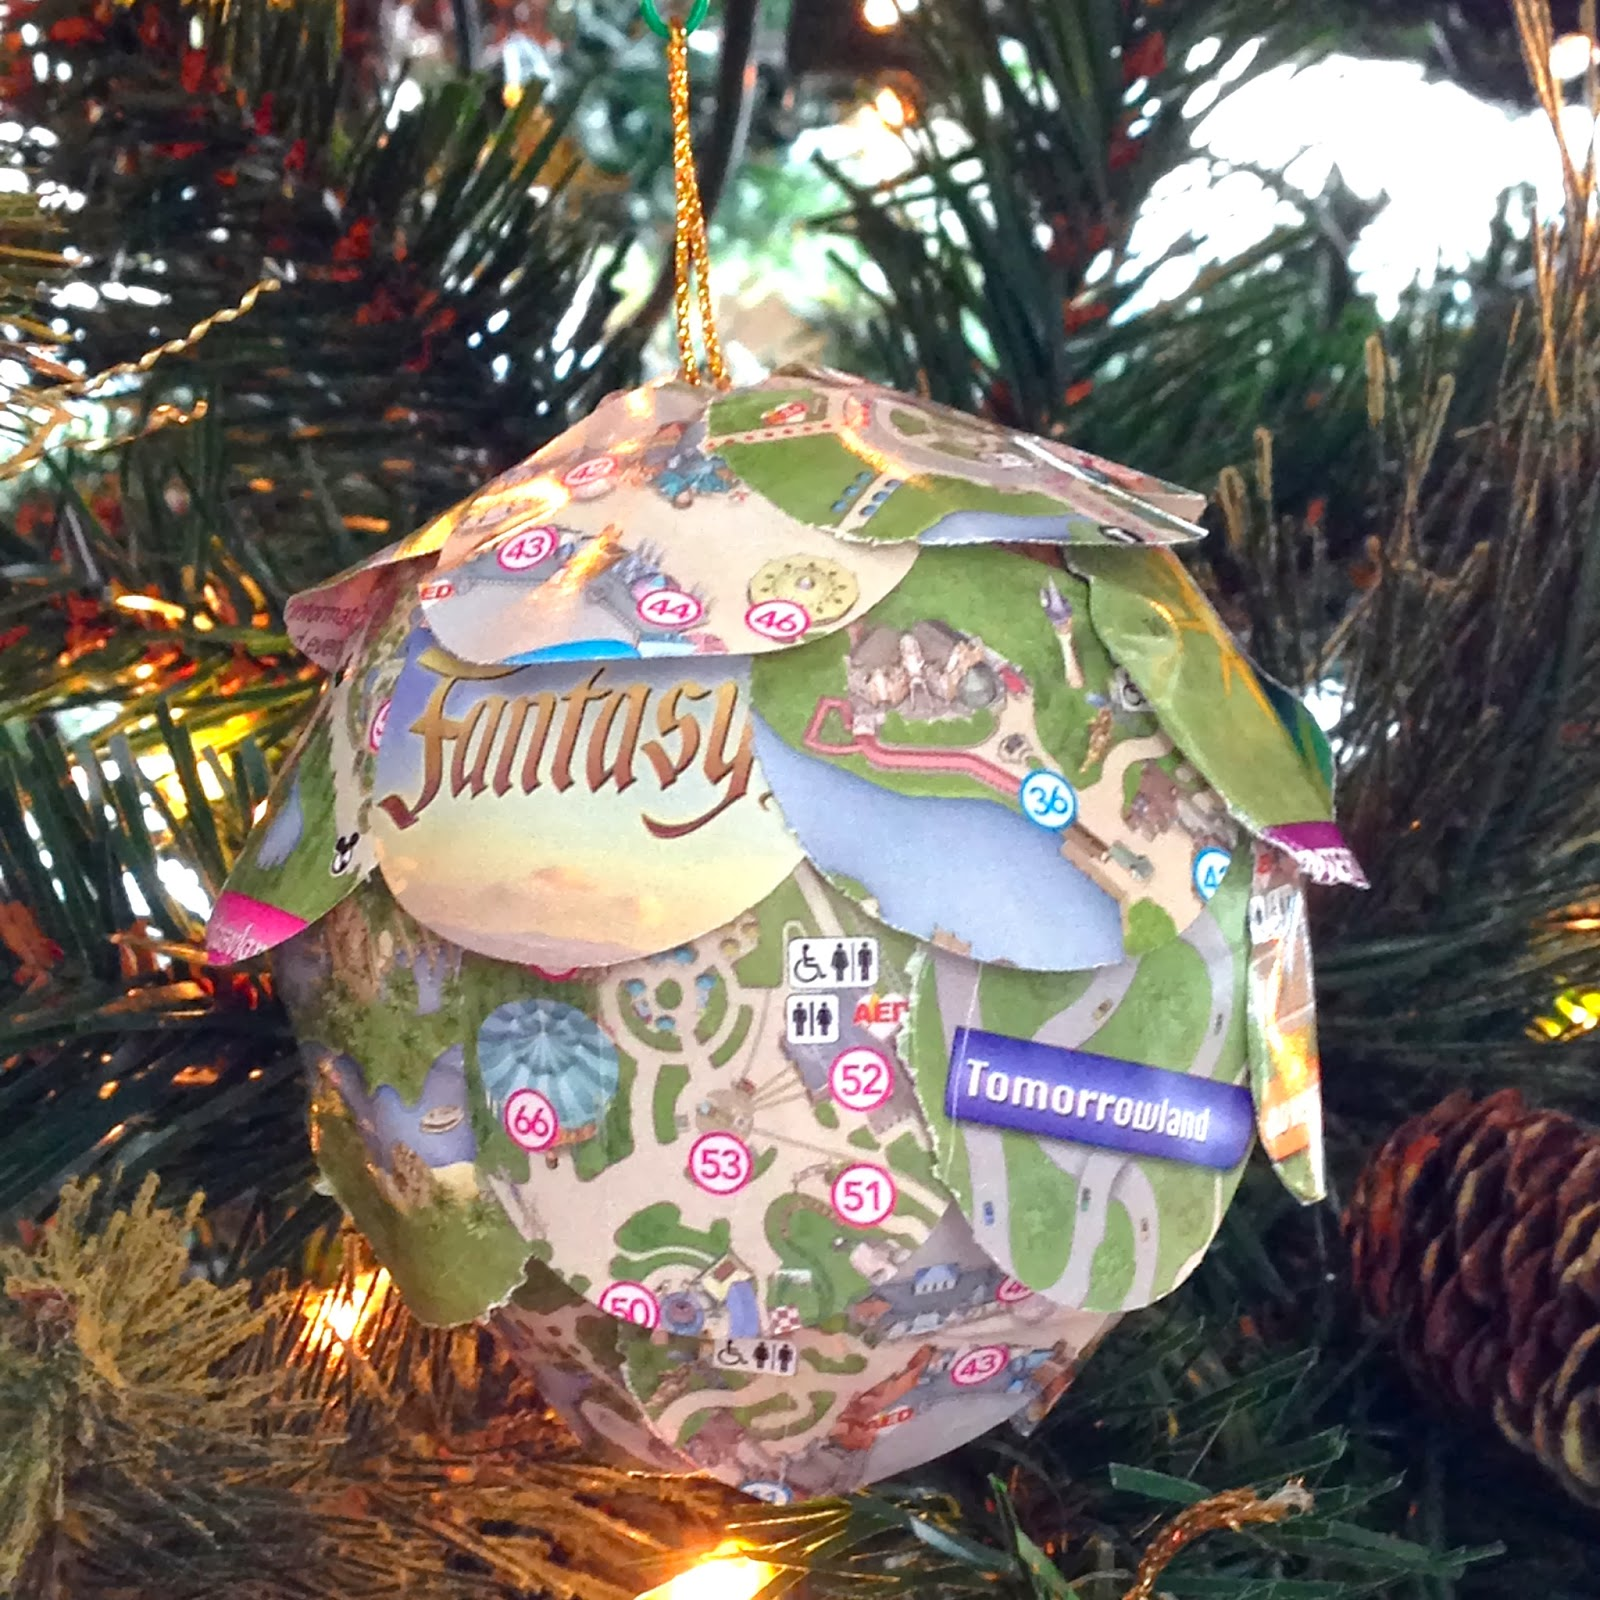 diy disney 12 days of christmas ornaments park map pomander i - Disney 12 Days Of Christmas